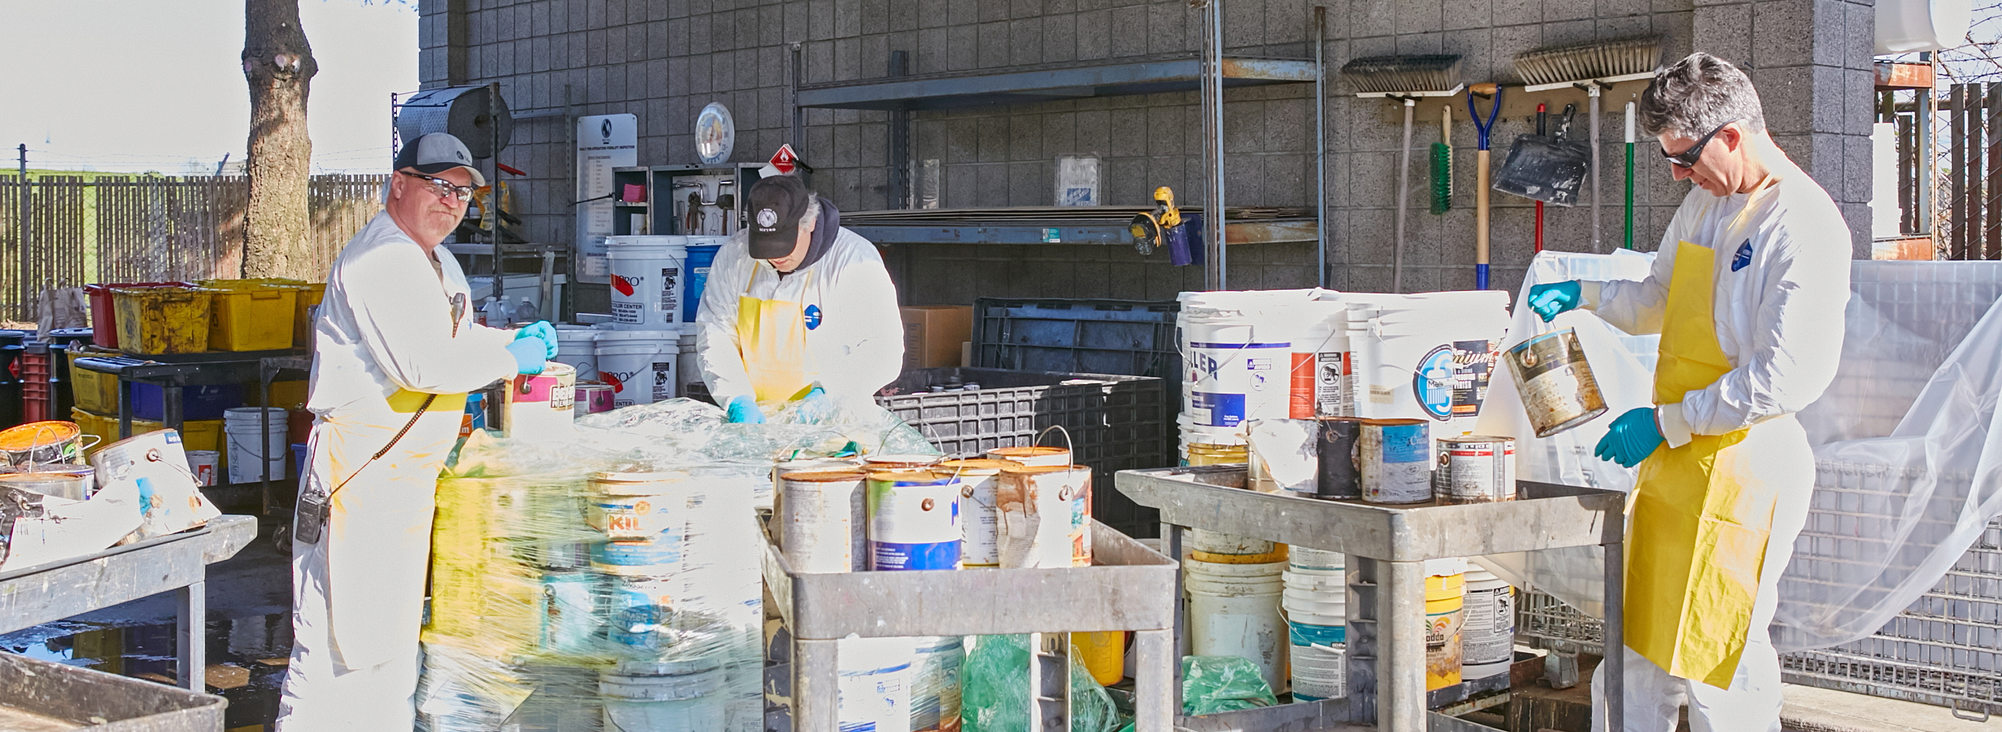 staff at Metro Central Household Hazardous Waste sort through items dropped off for safe disposal